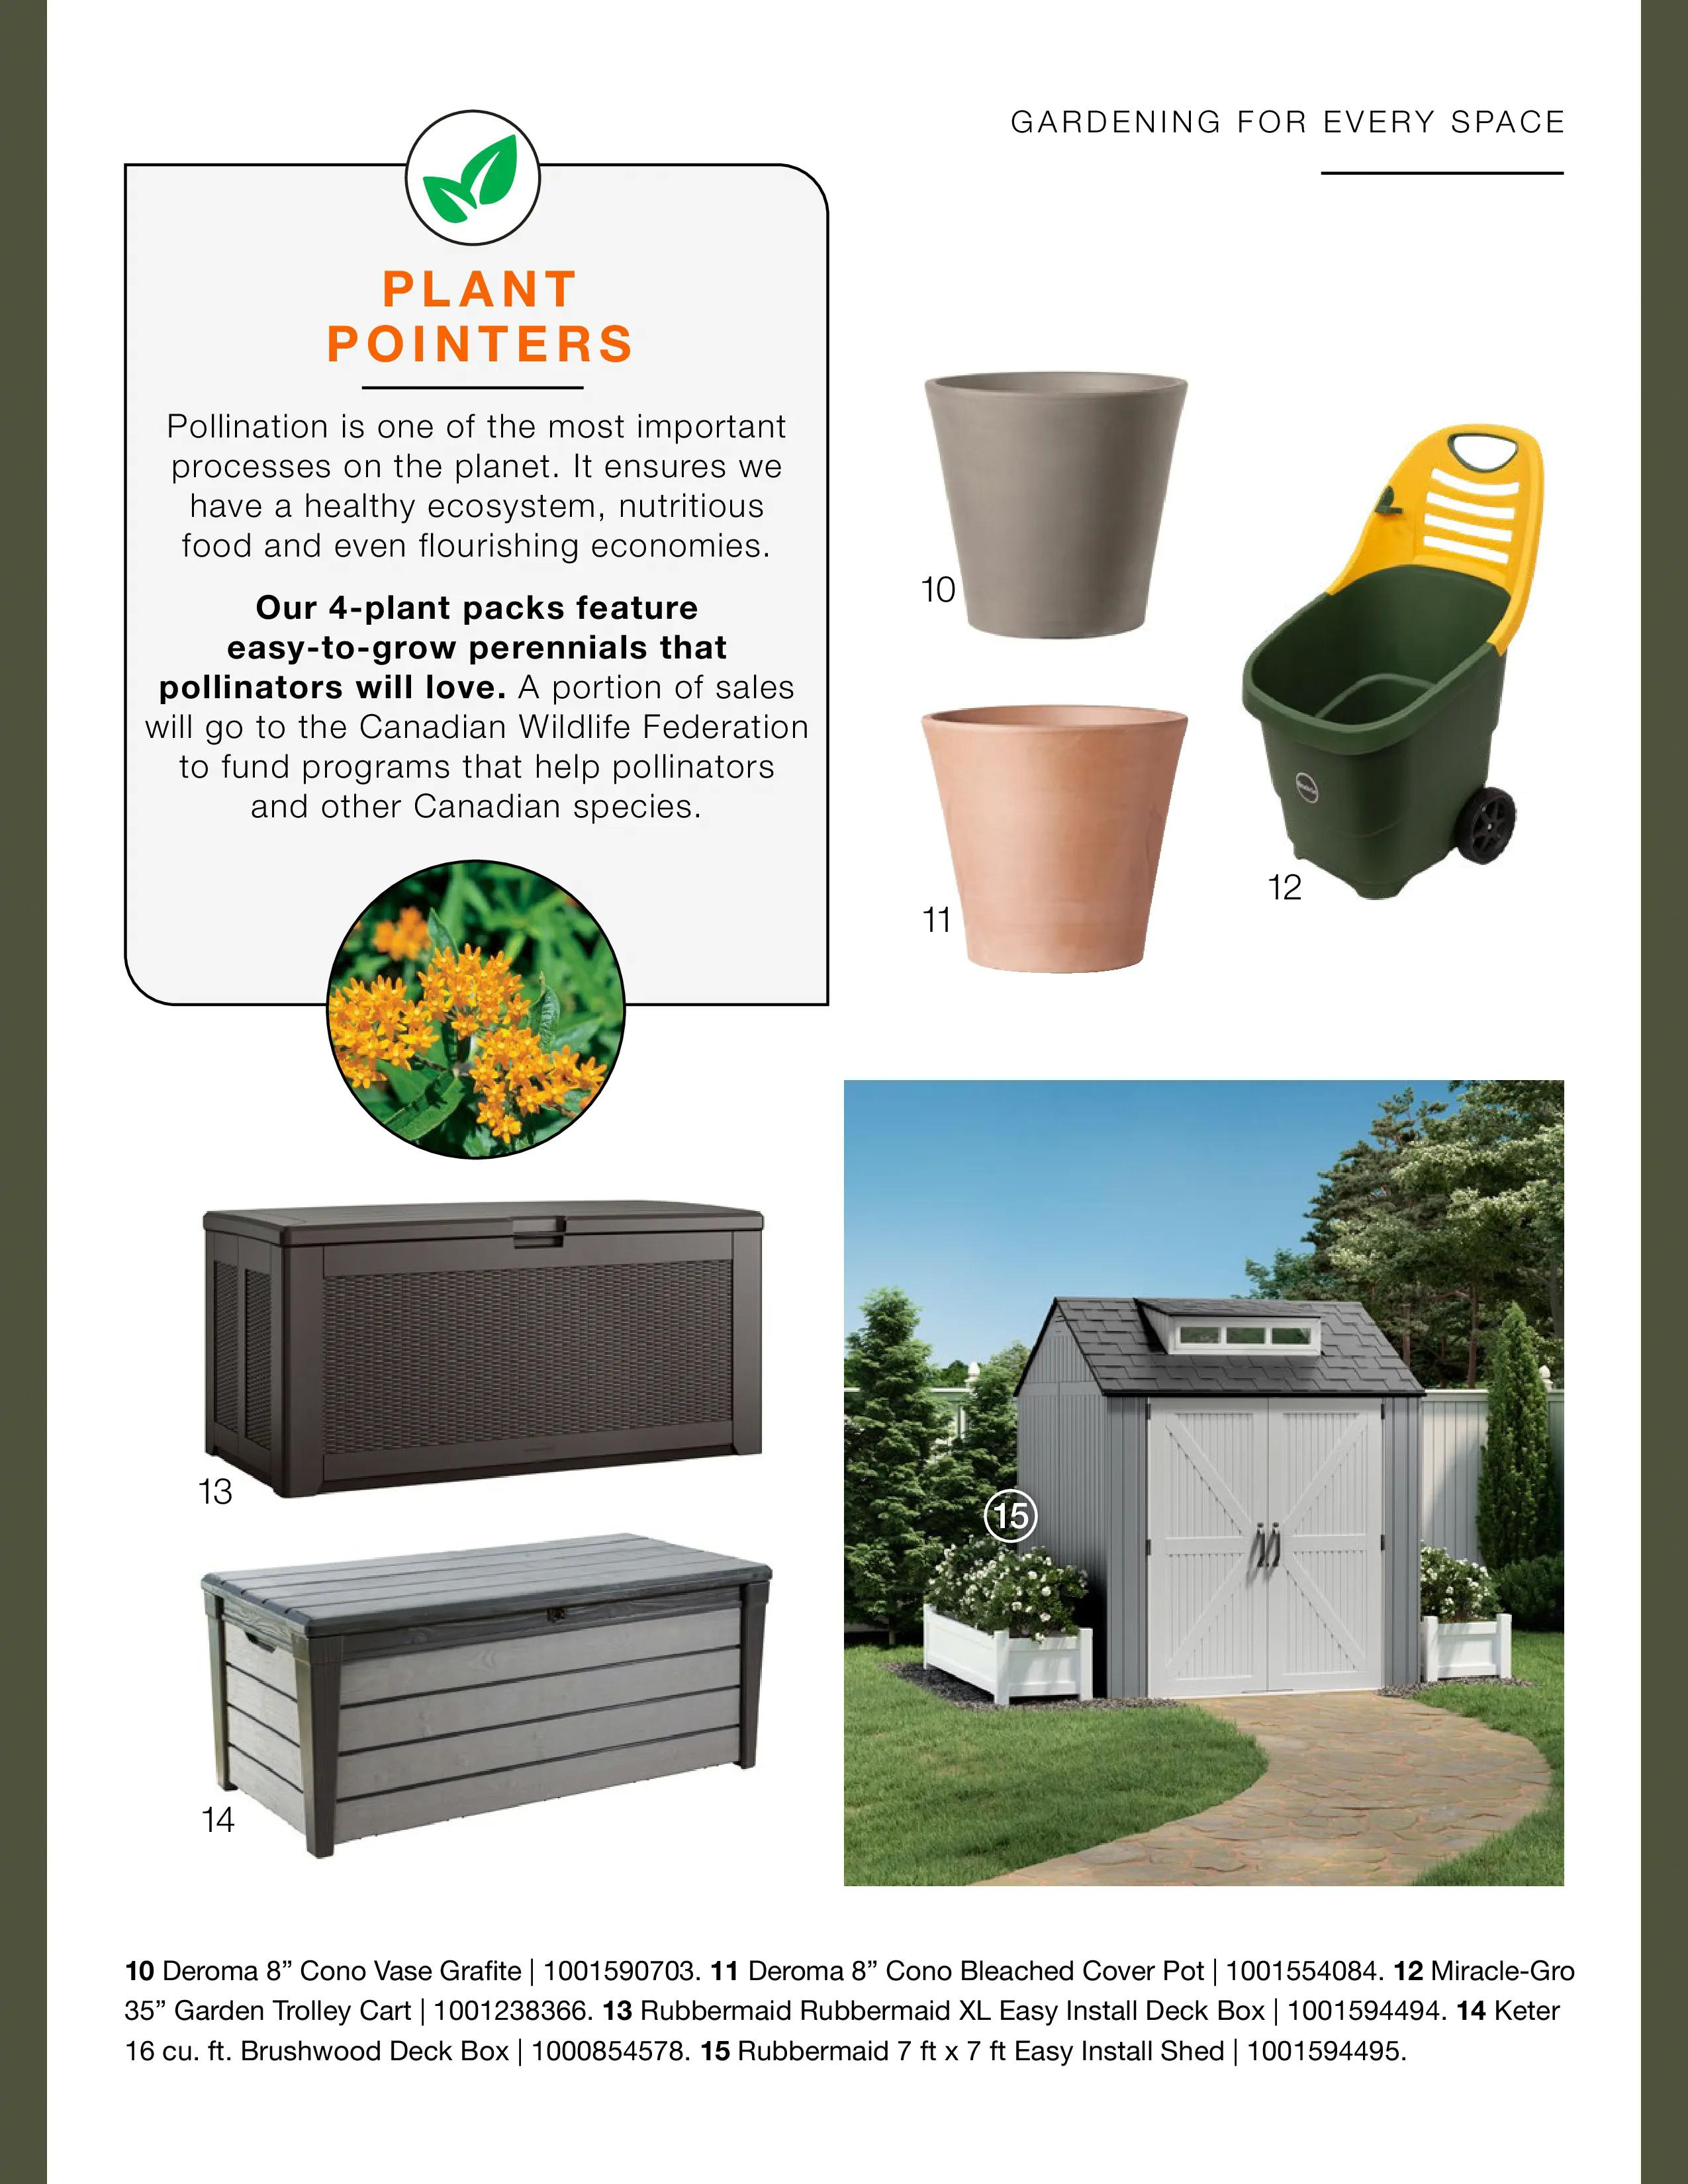 Home Depot - Outdoor Living - Page 23